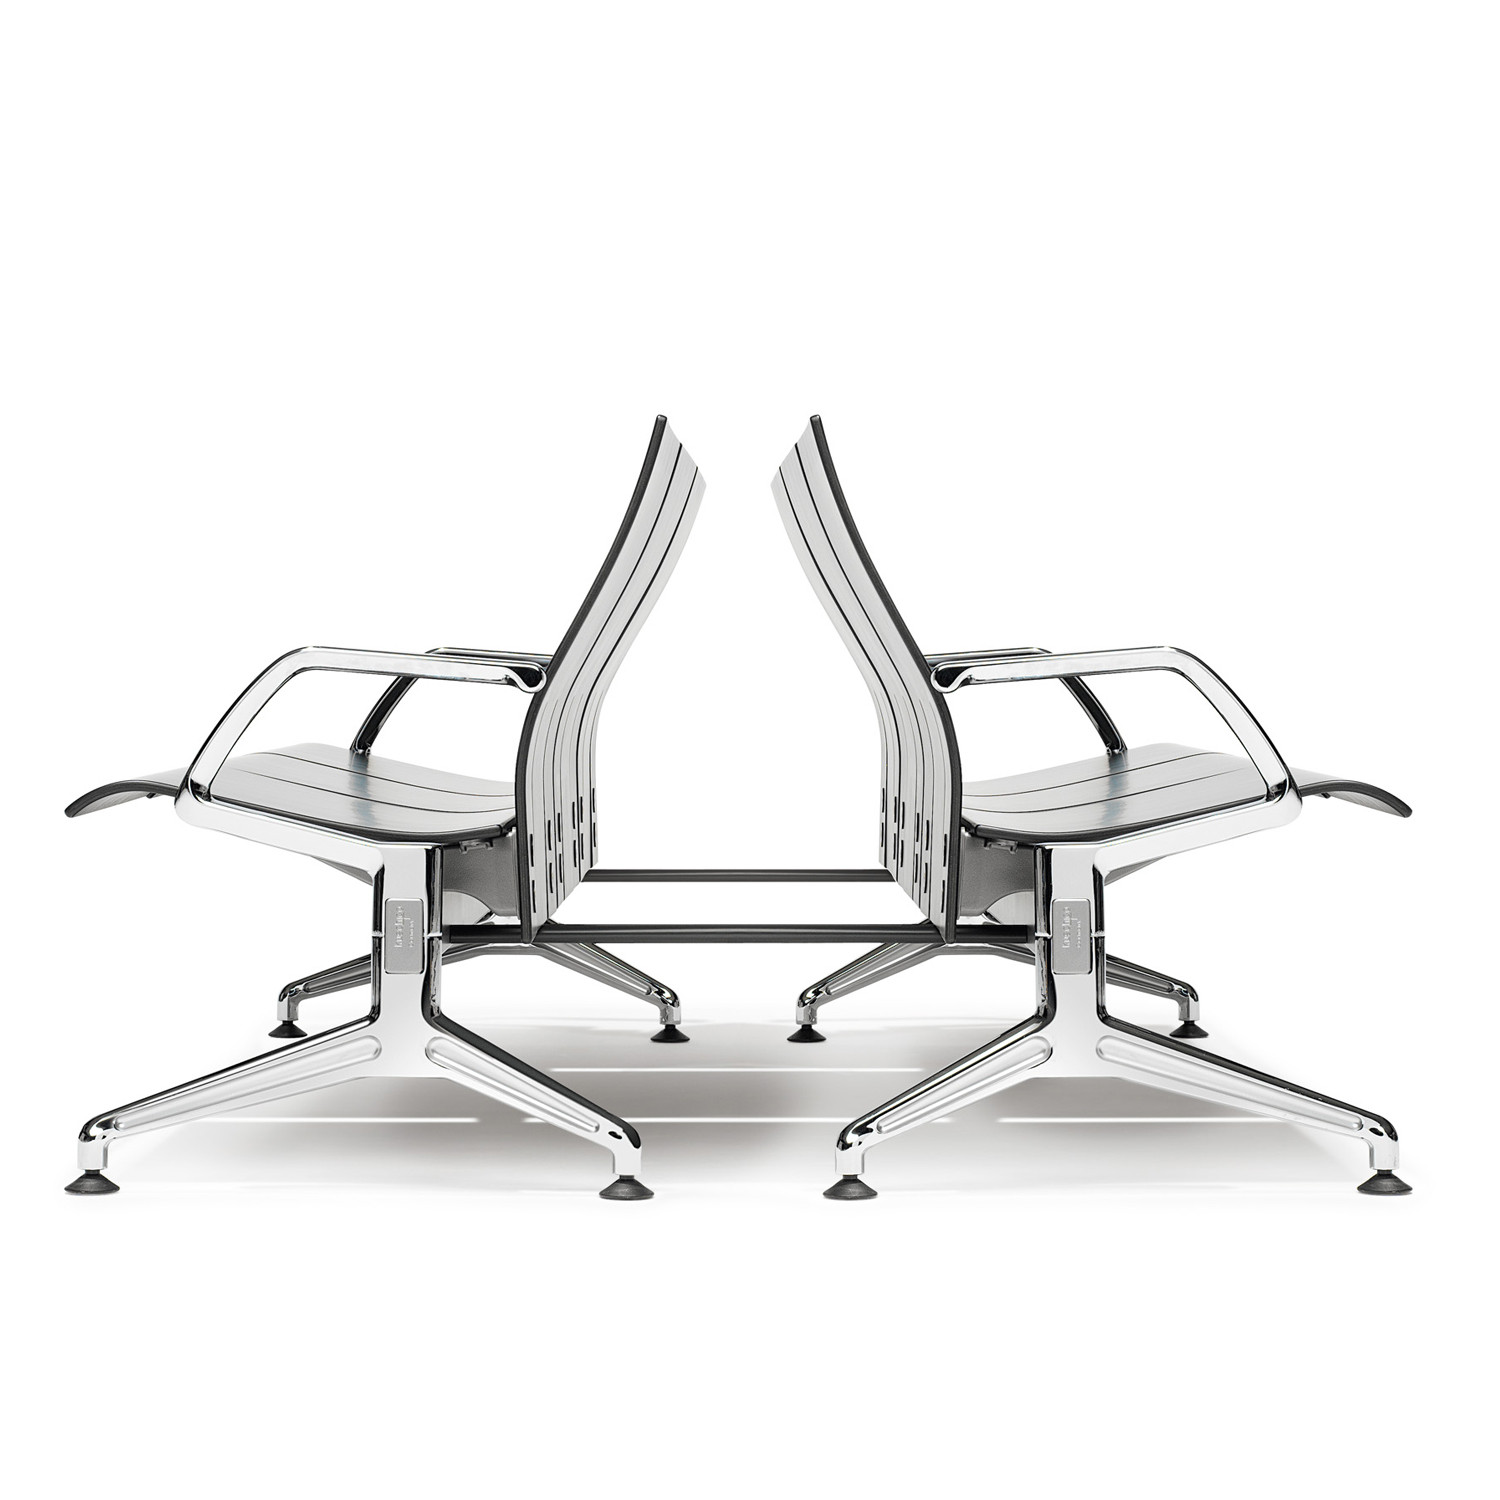 7000 Terminal Seating Airport Bench Apres Furniture